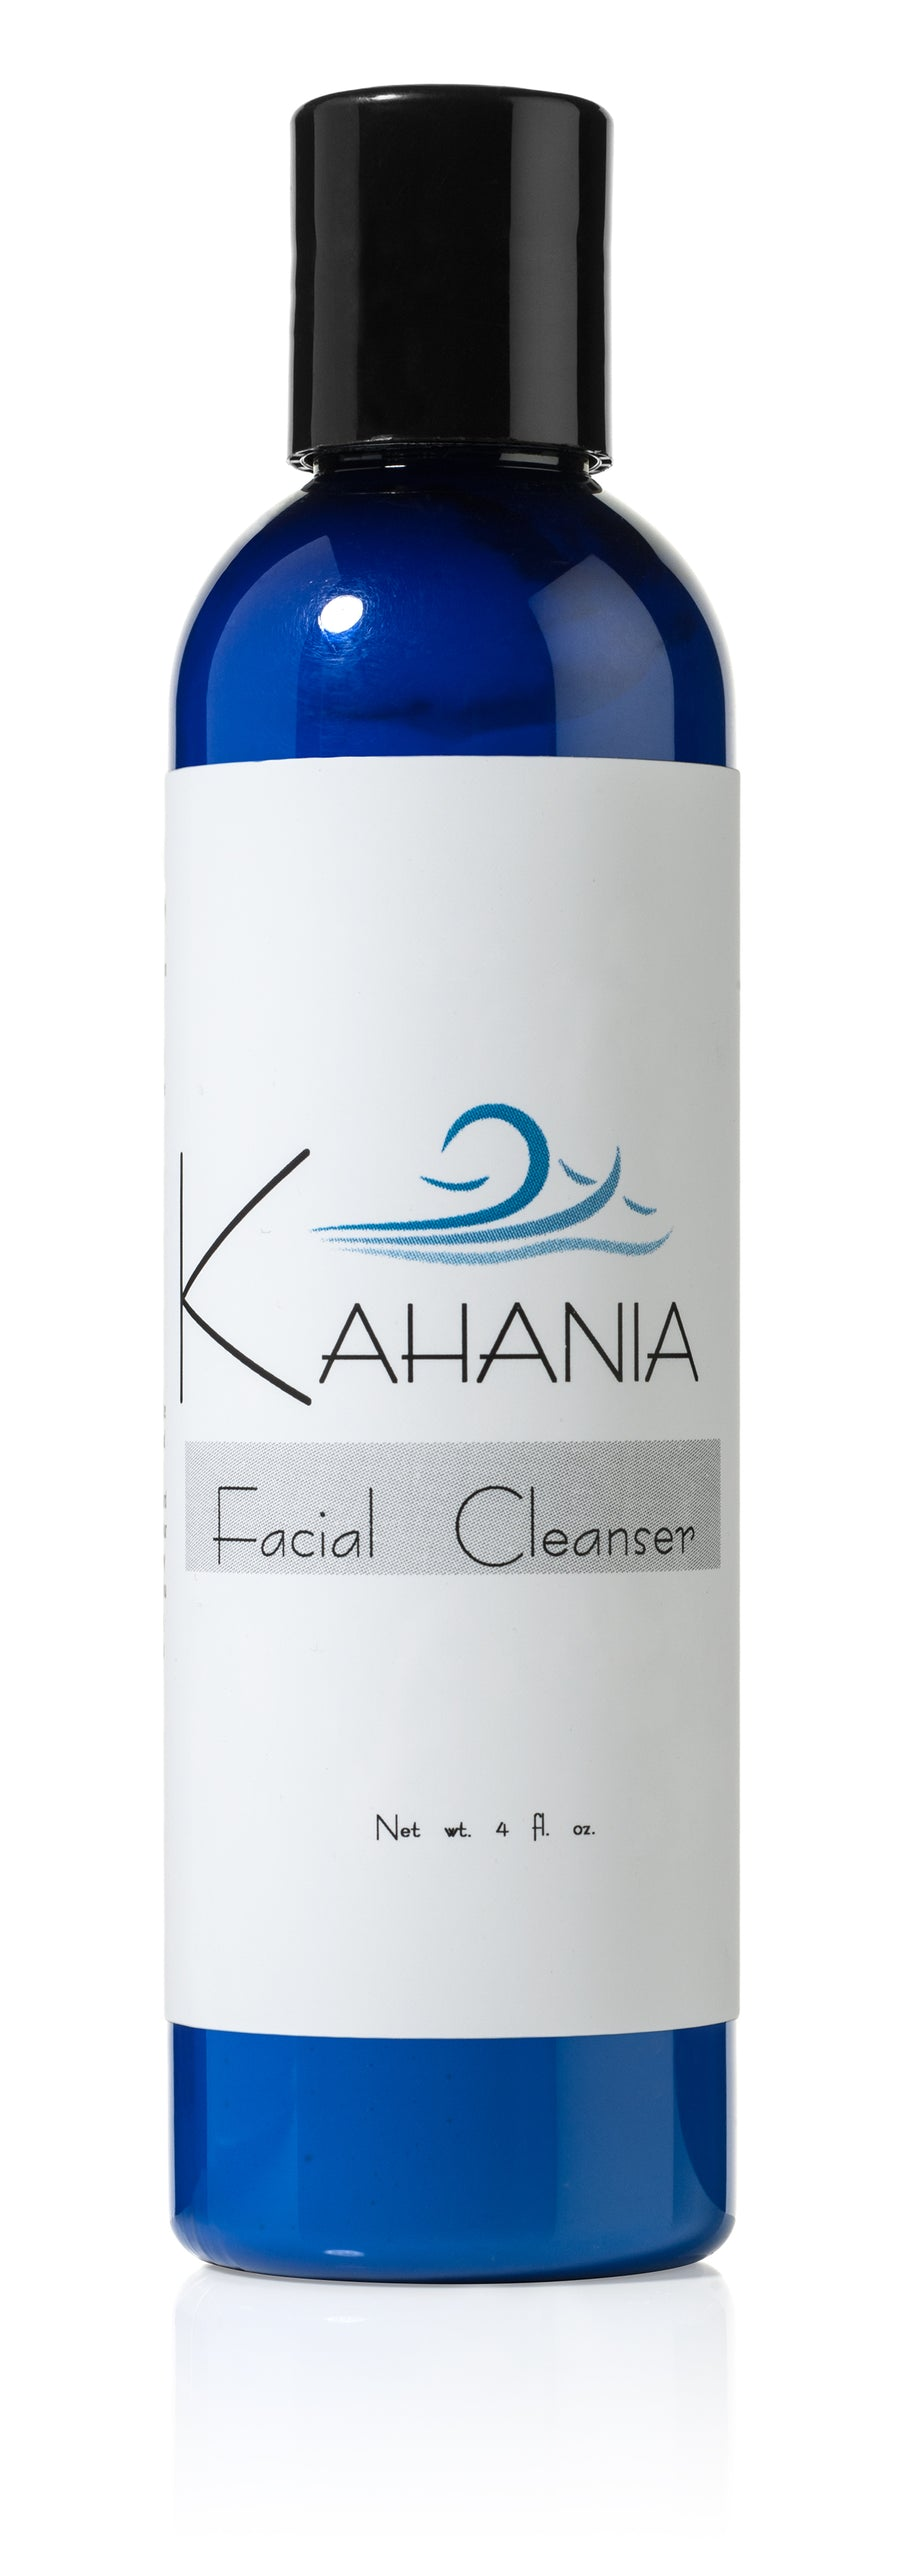 Facial Cleanser - Kahania Natural